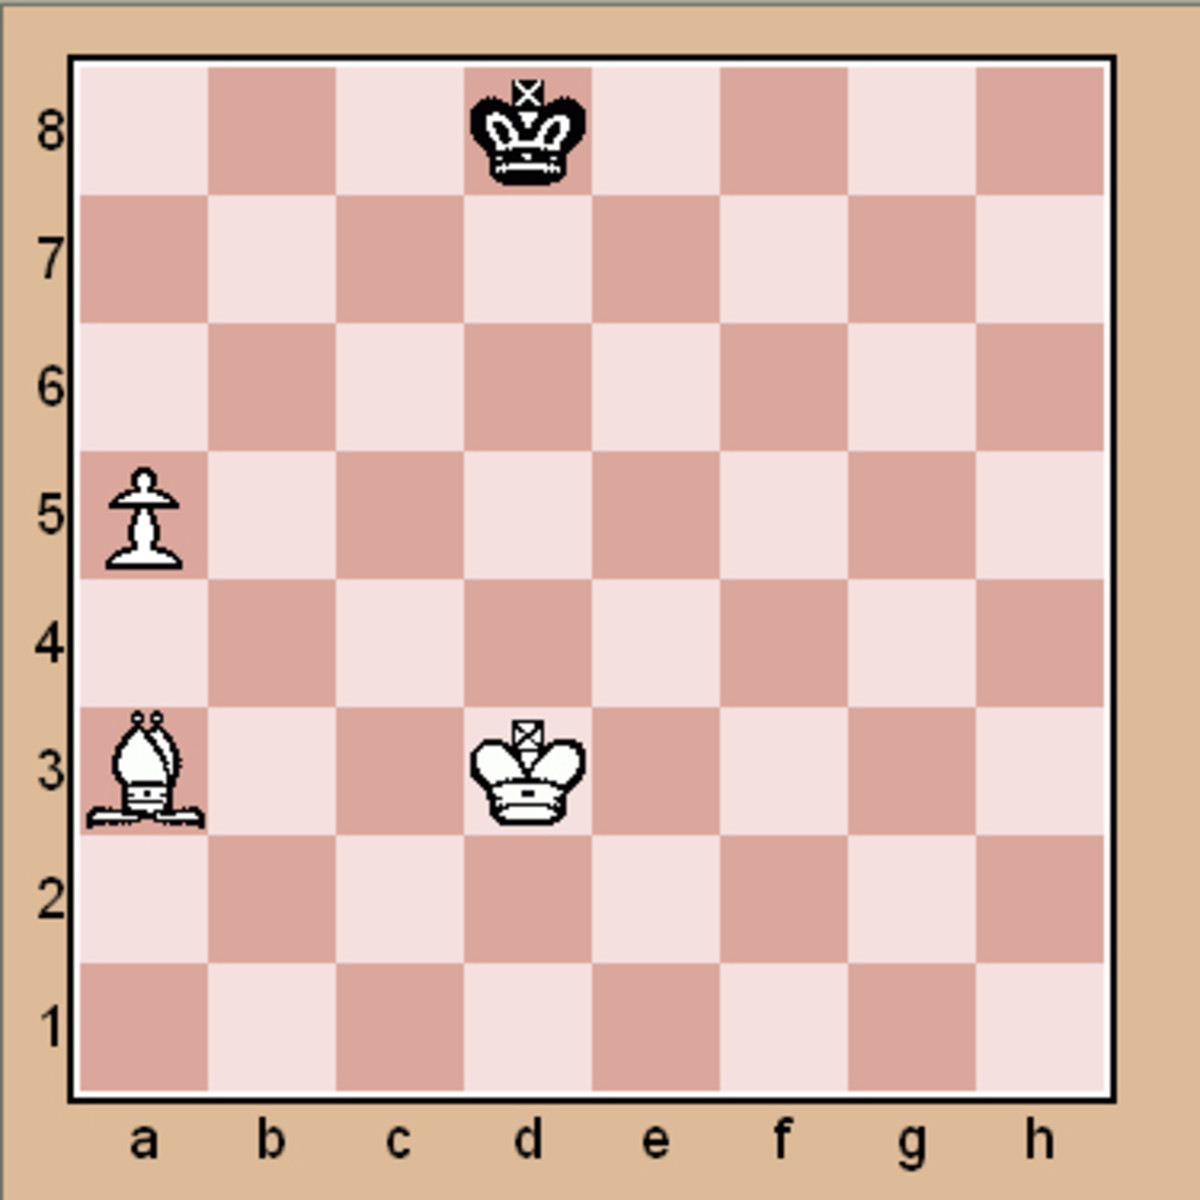 Chess end game puzzle (Click to enlarge)